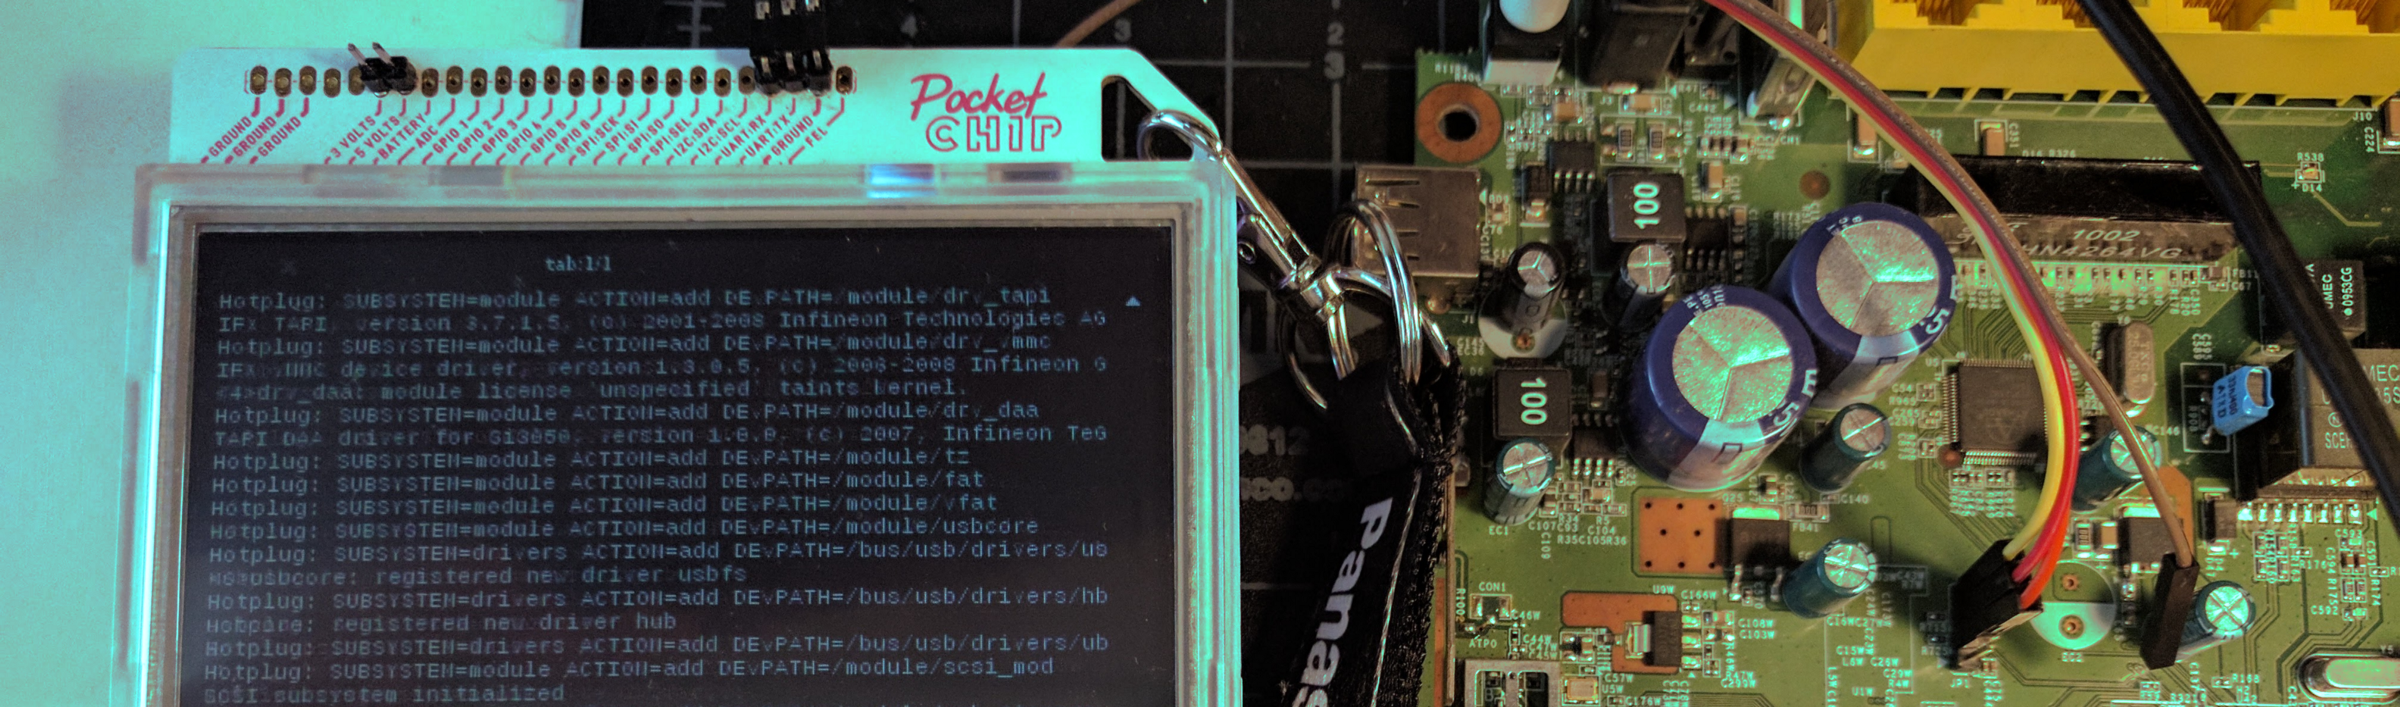 Turn Your PocketCHIP Into a Badass On-The-Go Hardware Hacker's